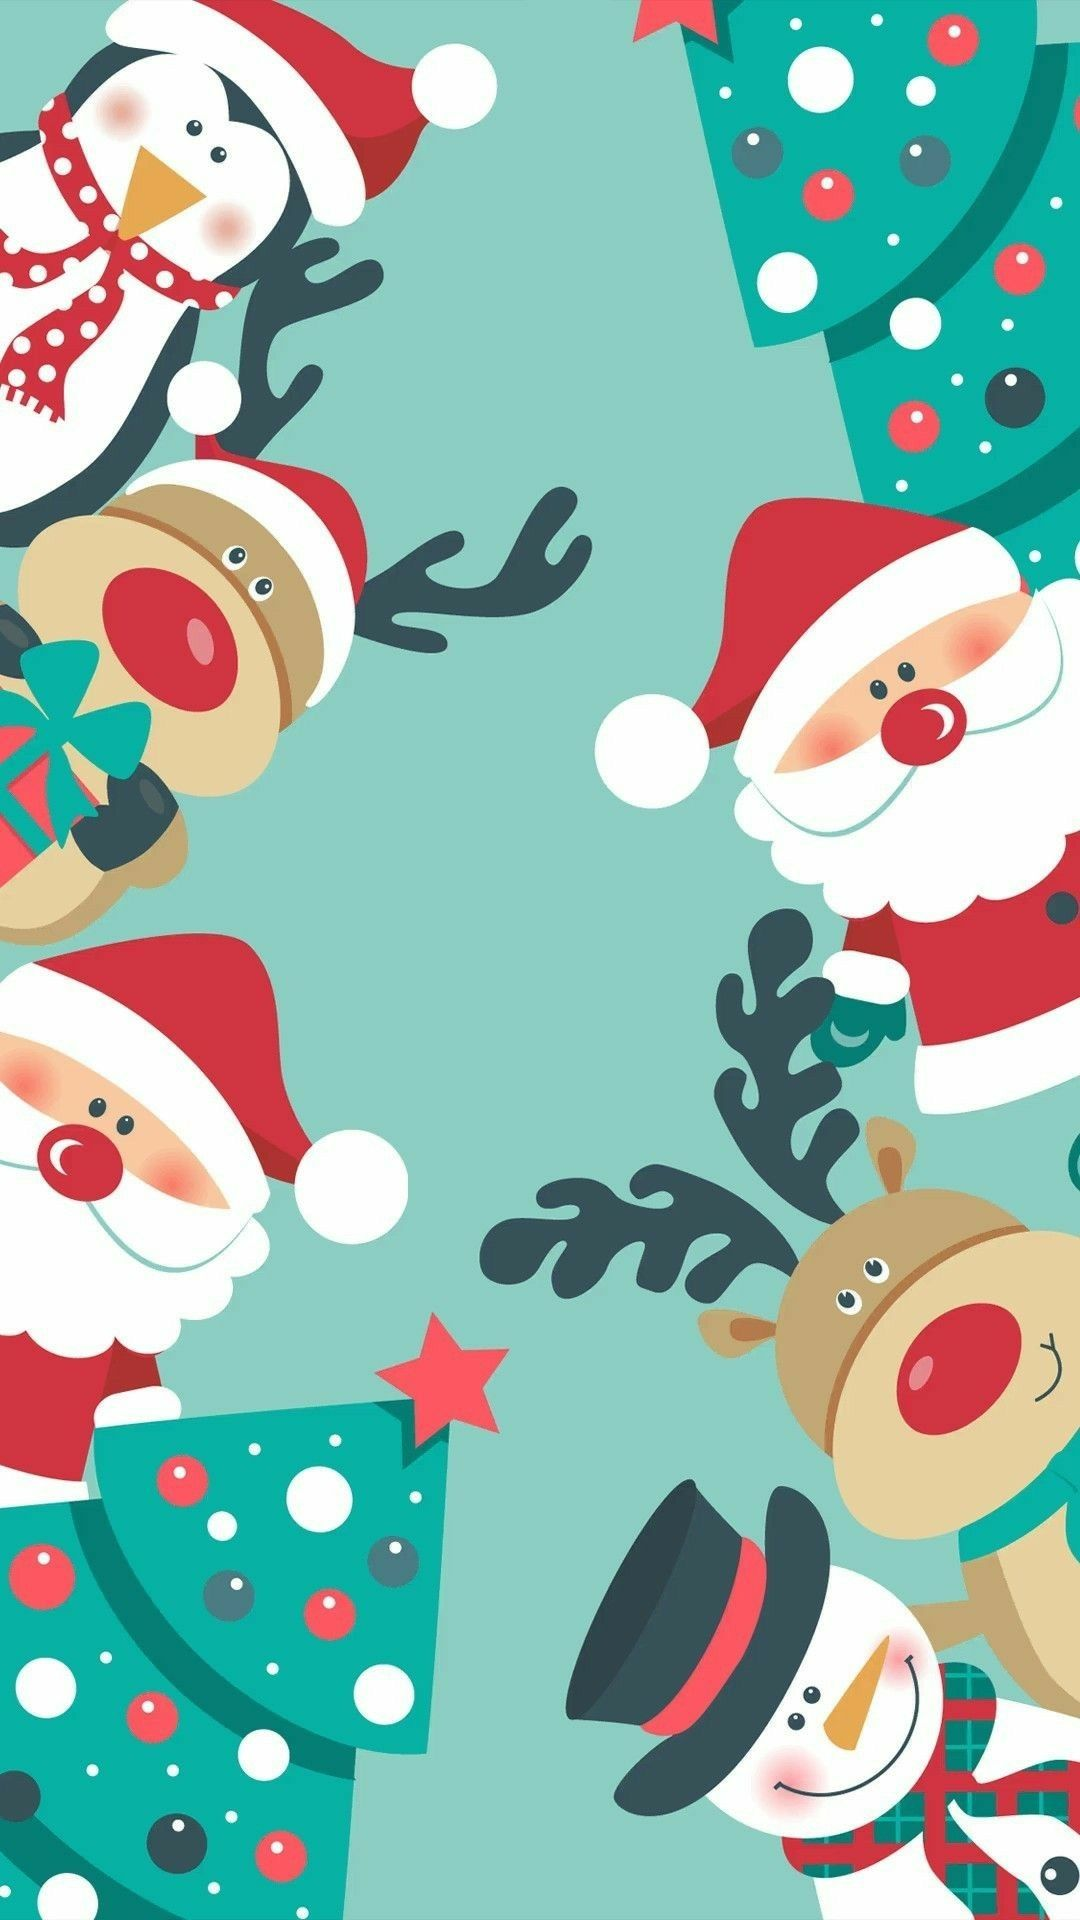 Wish You Merry Christmas Merrychristmas Christmas Festival Wishes Ads Wallpaper Iphone Christmas Cute Christmas Wallpaper Merry Christmas Wallpaper